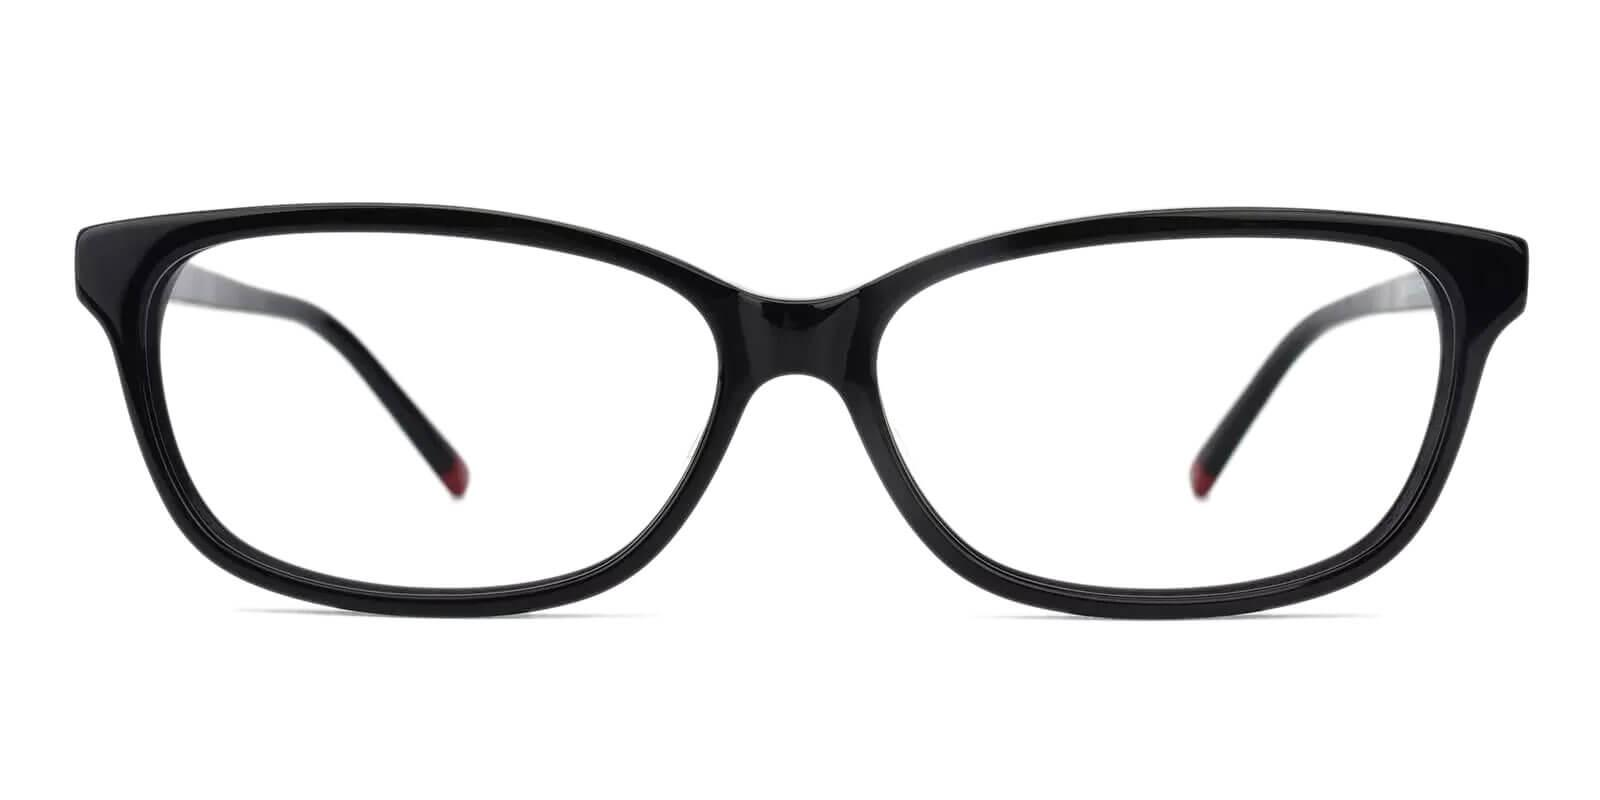 Cyprus Black Acetate Eyeglasses , SpringHinges , UniversalBridgeFit Frames from ABBE Glasses